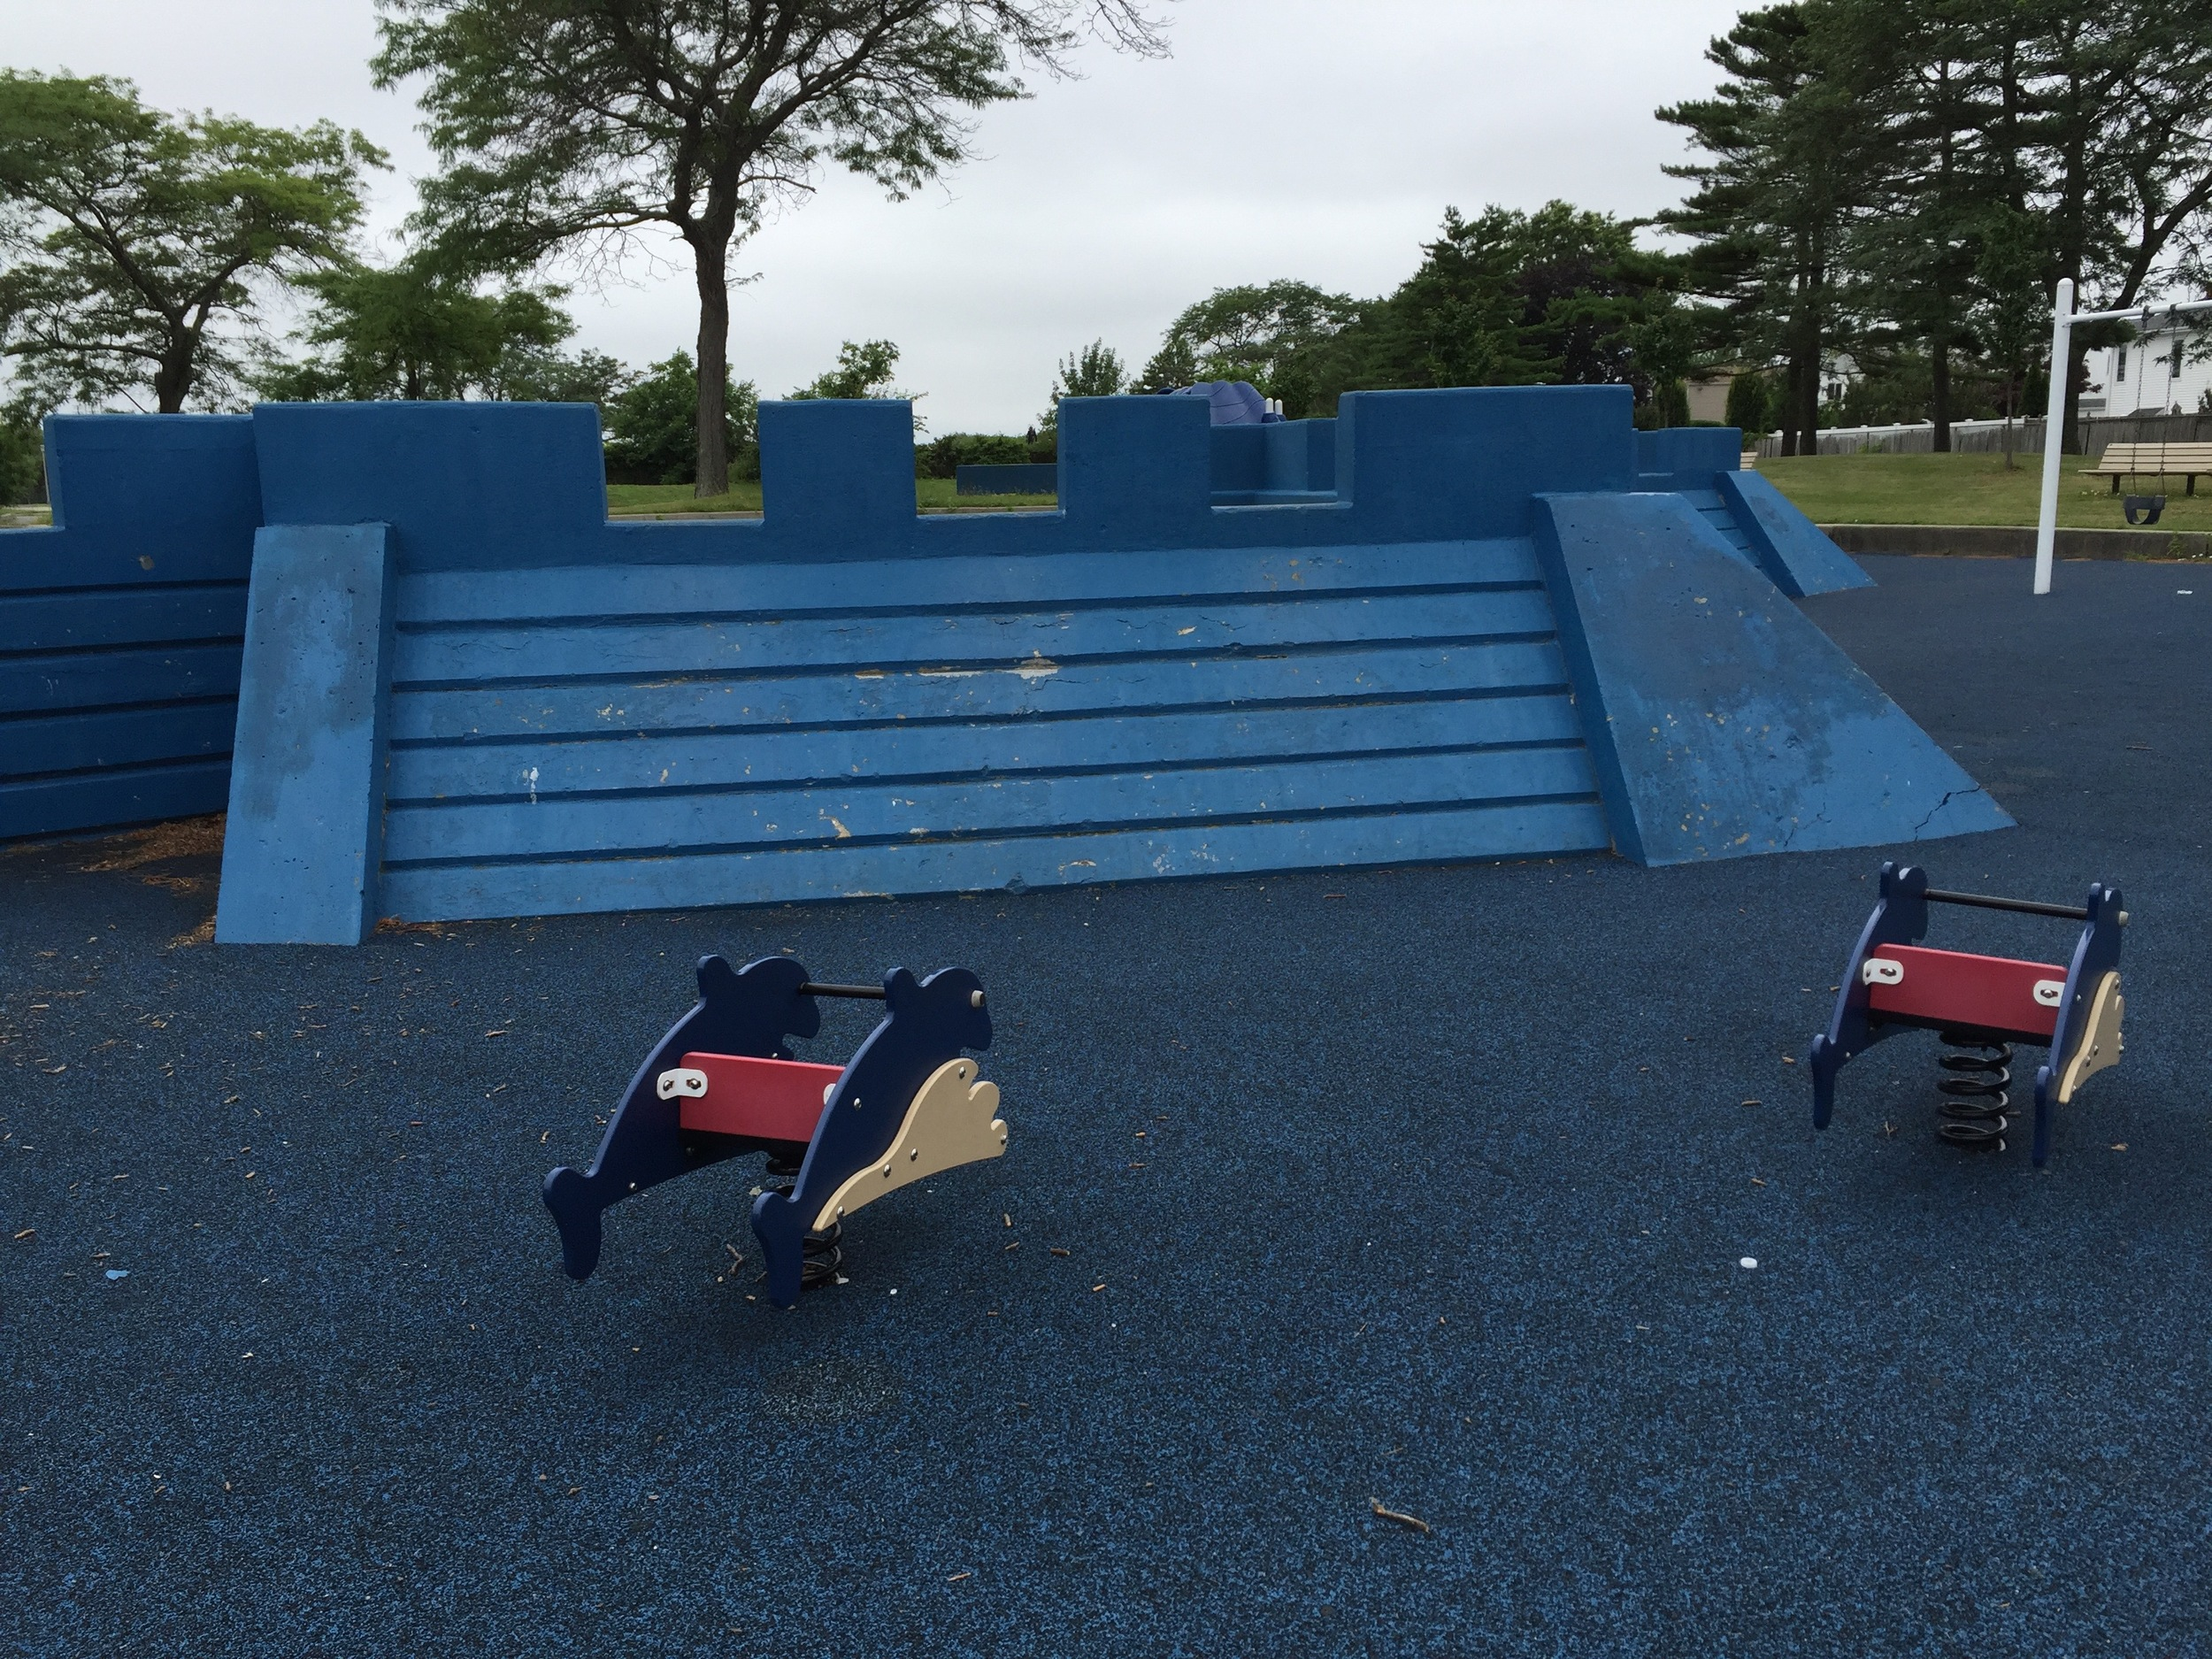 Marina playground fort at Wantagh Park